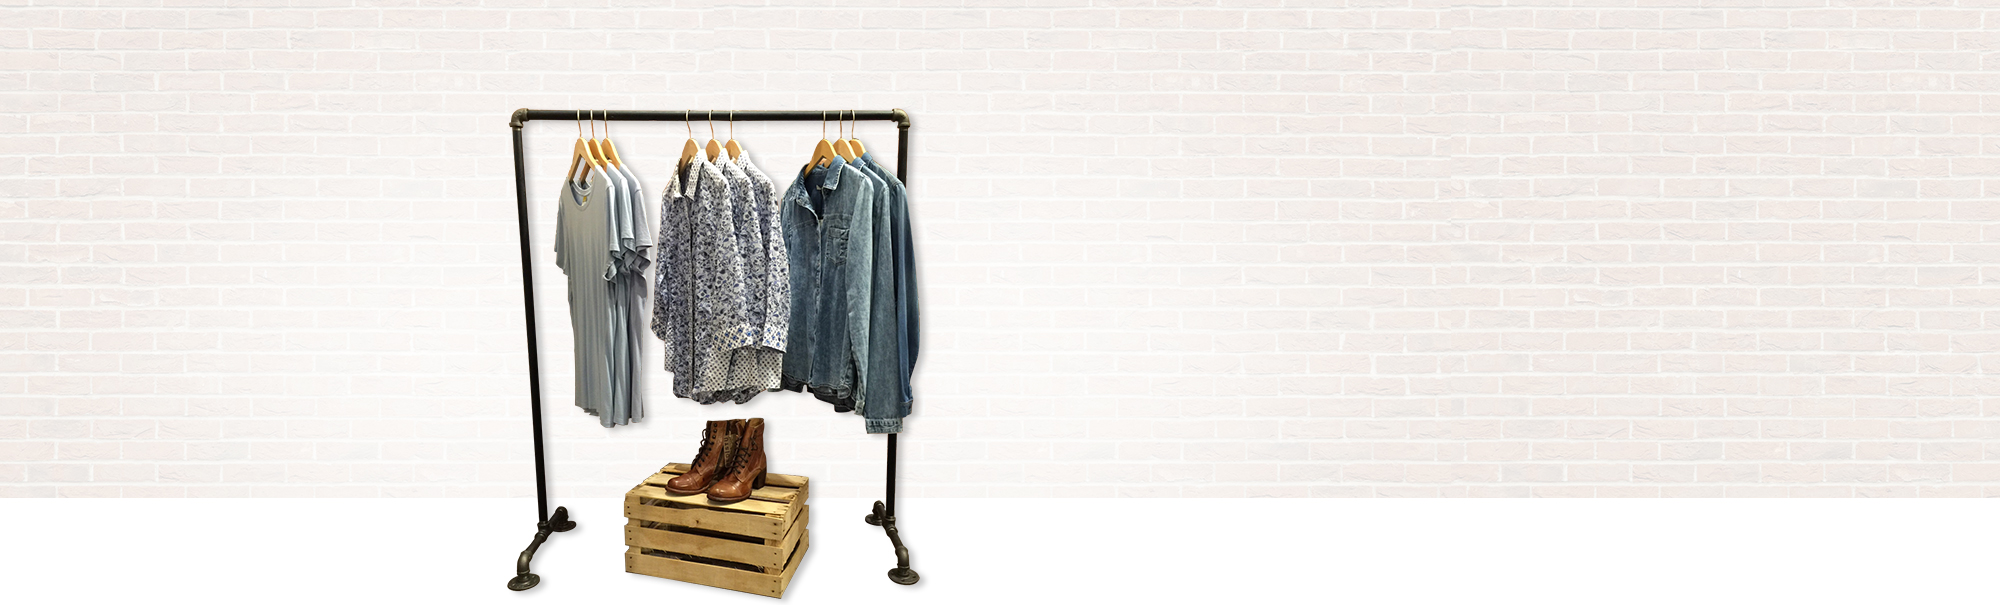 look rack clothing great boutique diy the racks foundation